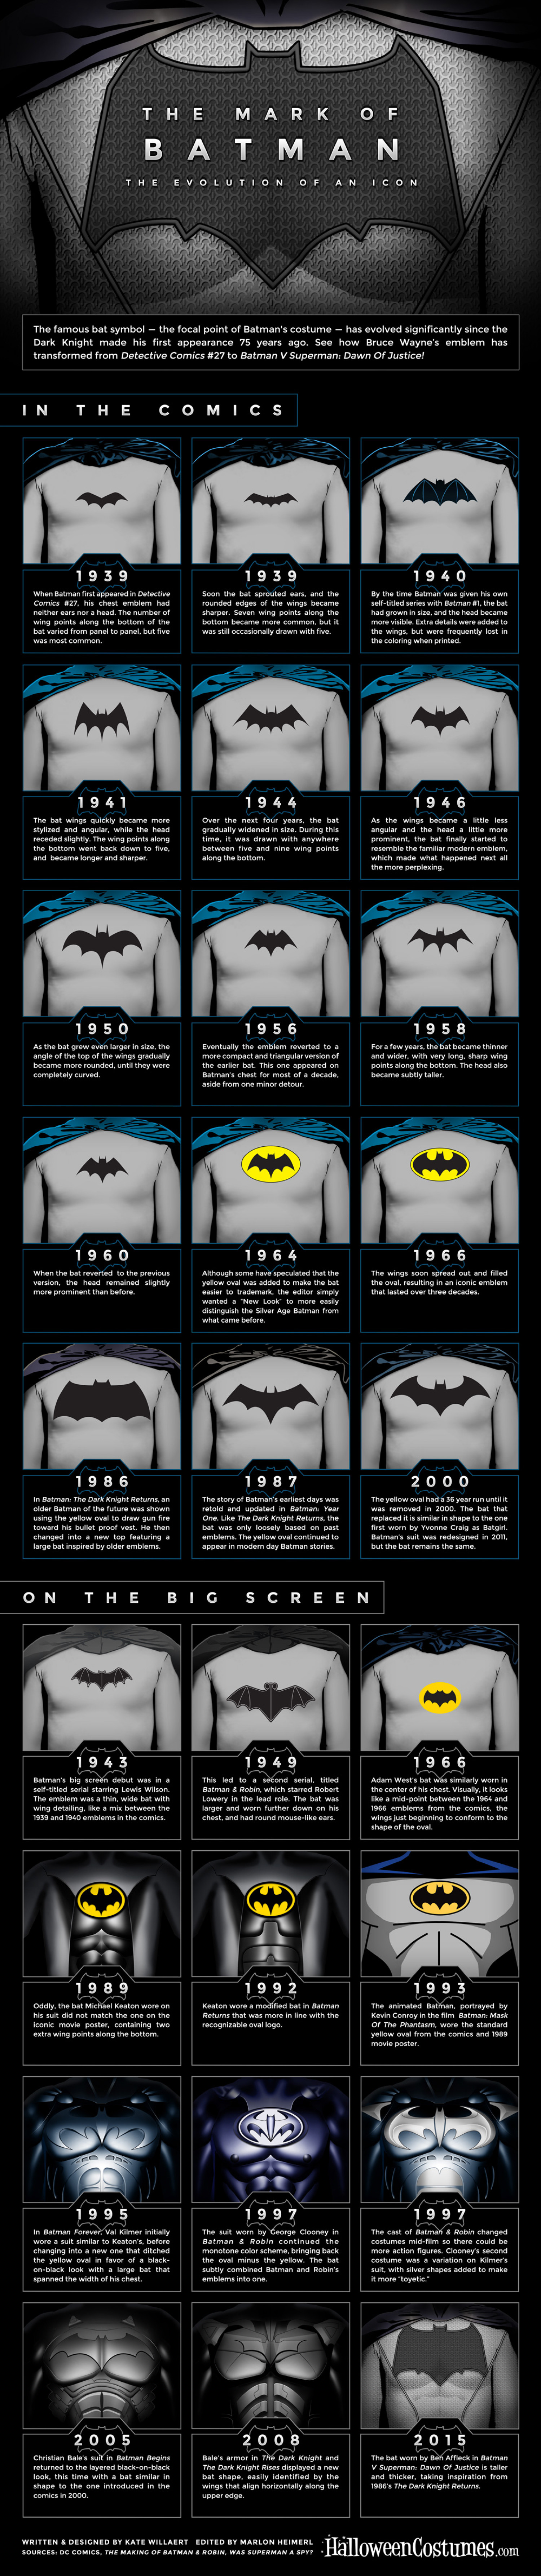 The Mark of Batman: The Evolution of an Icon Infographic